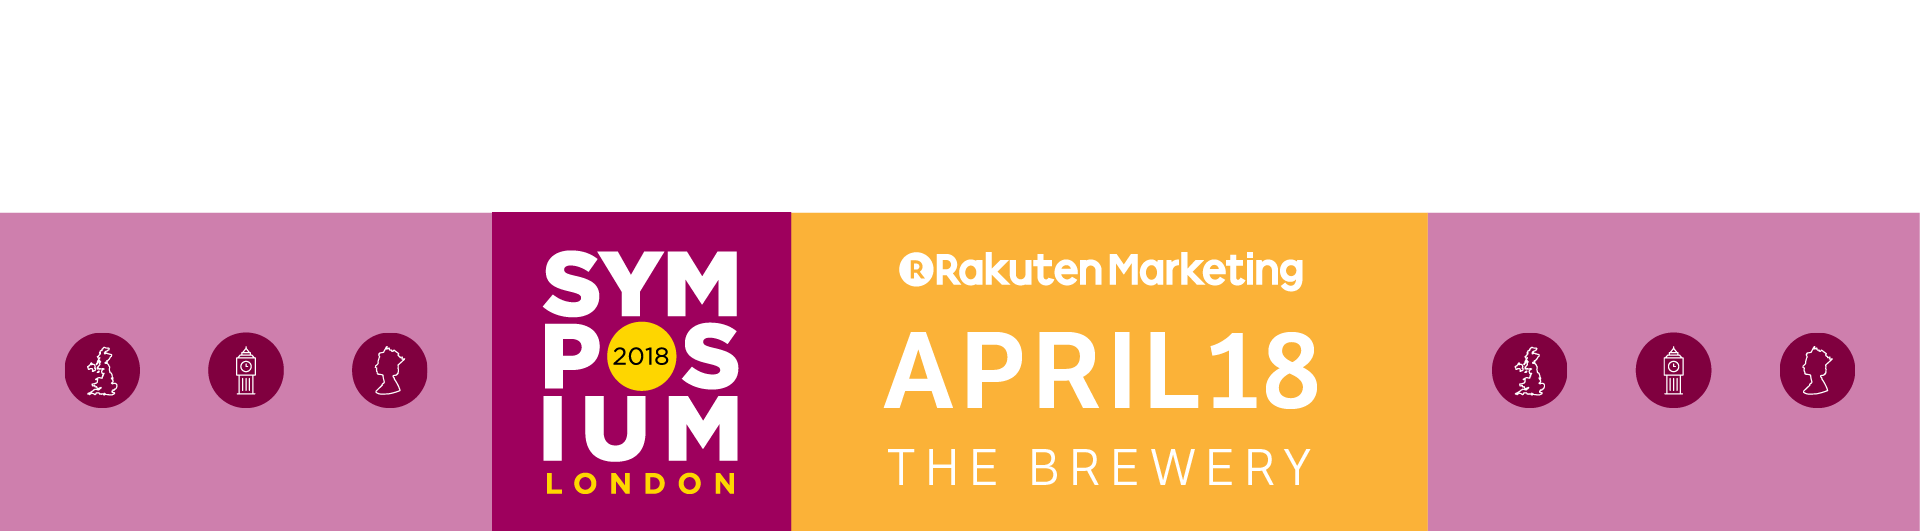 Rakuten Marketing Symposium London 2018